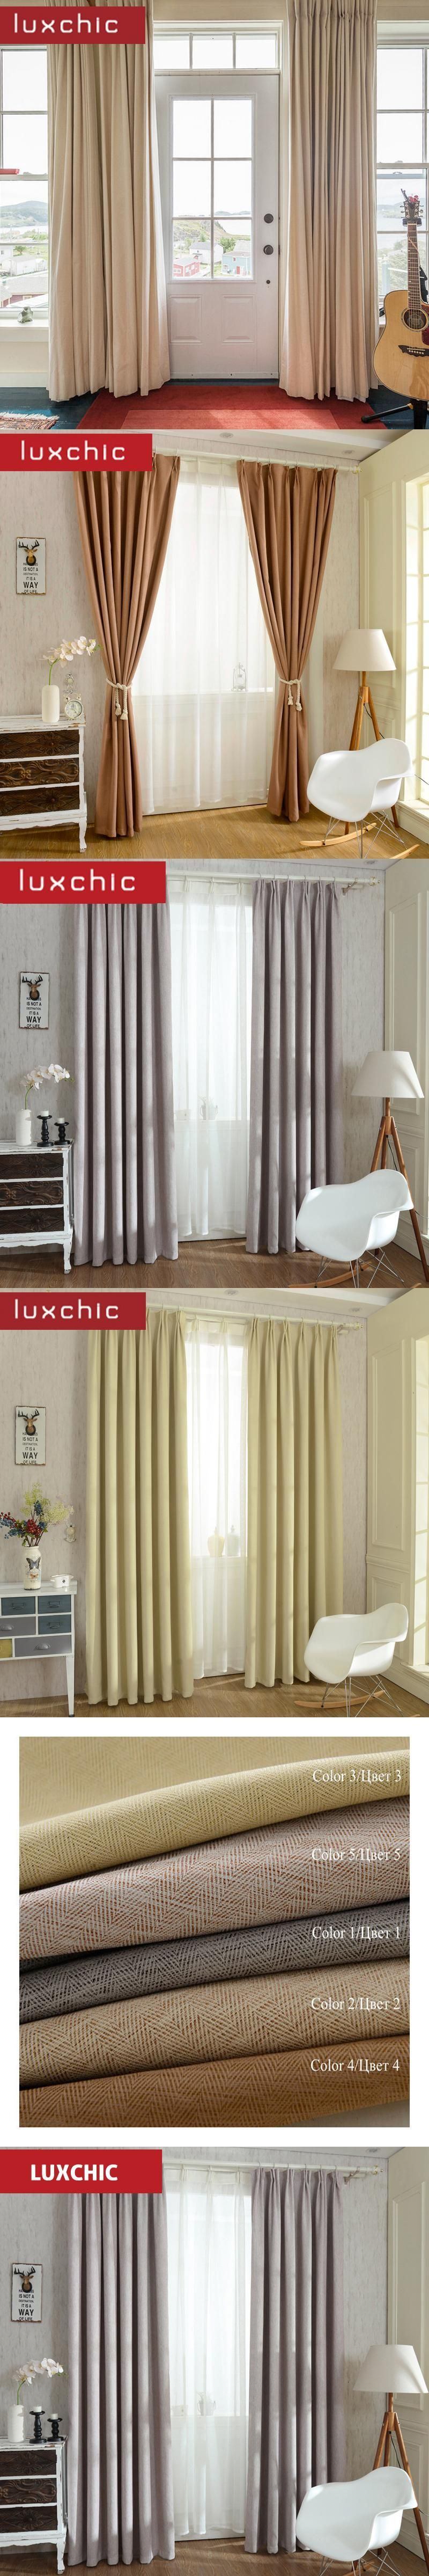 2 window bedroom ideas  best blackout curtains for childrenus rooms u room darkening ideas